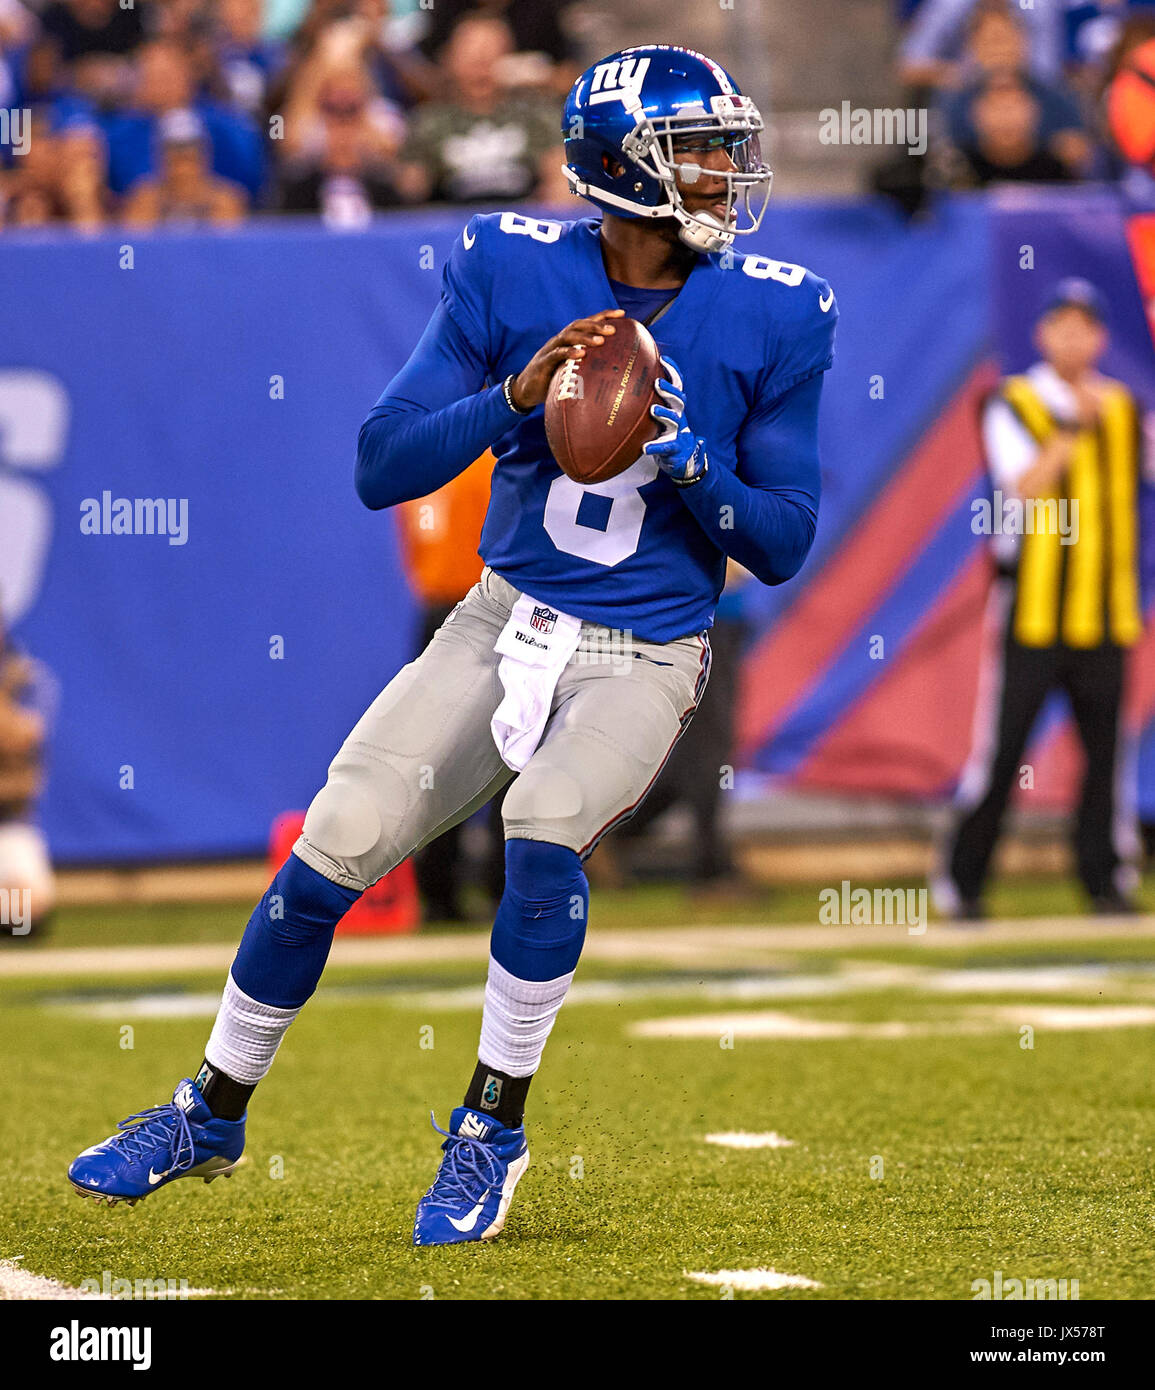 August 11, 2017 - East Rutherford, New Jersey, U.S. - Giants' quarterback Josh Johnson (8) drops back to pass during NFL pre-season action between the Pittsburgh Steelers and the New York Giants at MetLife Stadium in East Rutherford, New Jersey. Duncan Williams/CSM - Stock Image